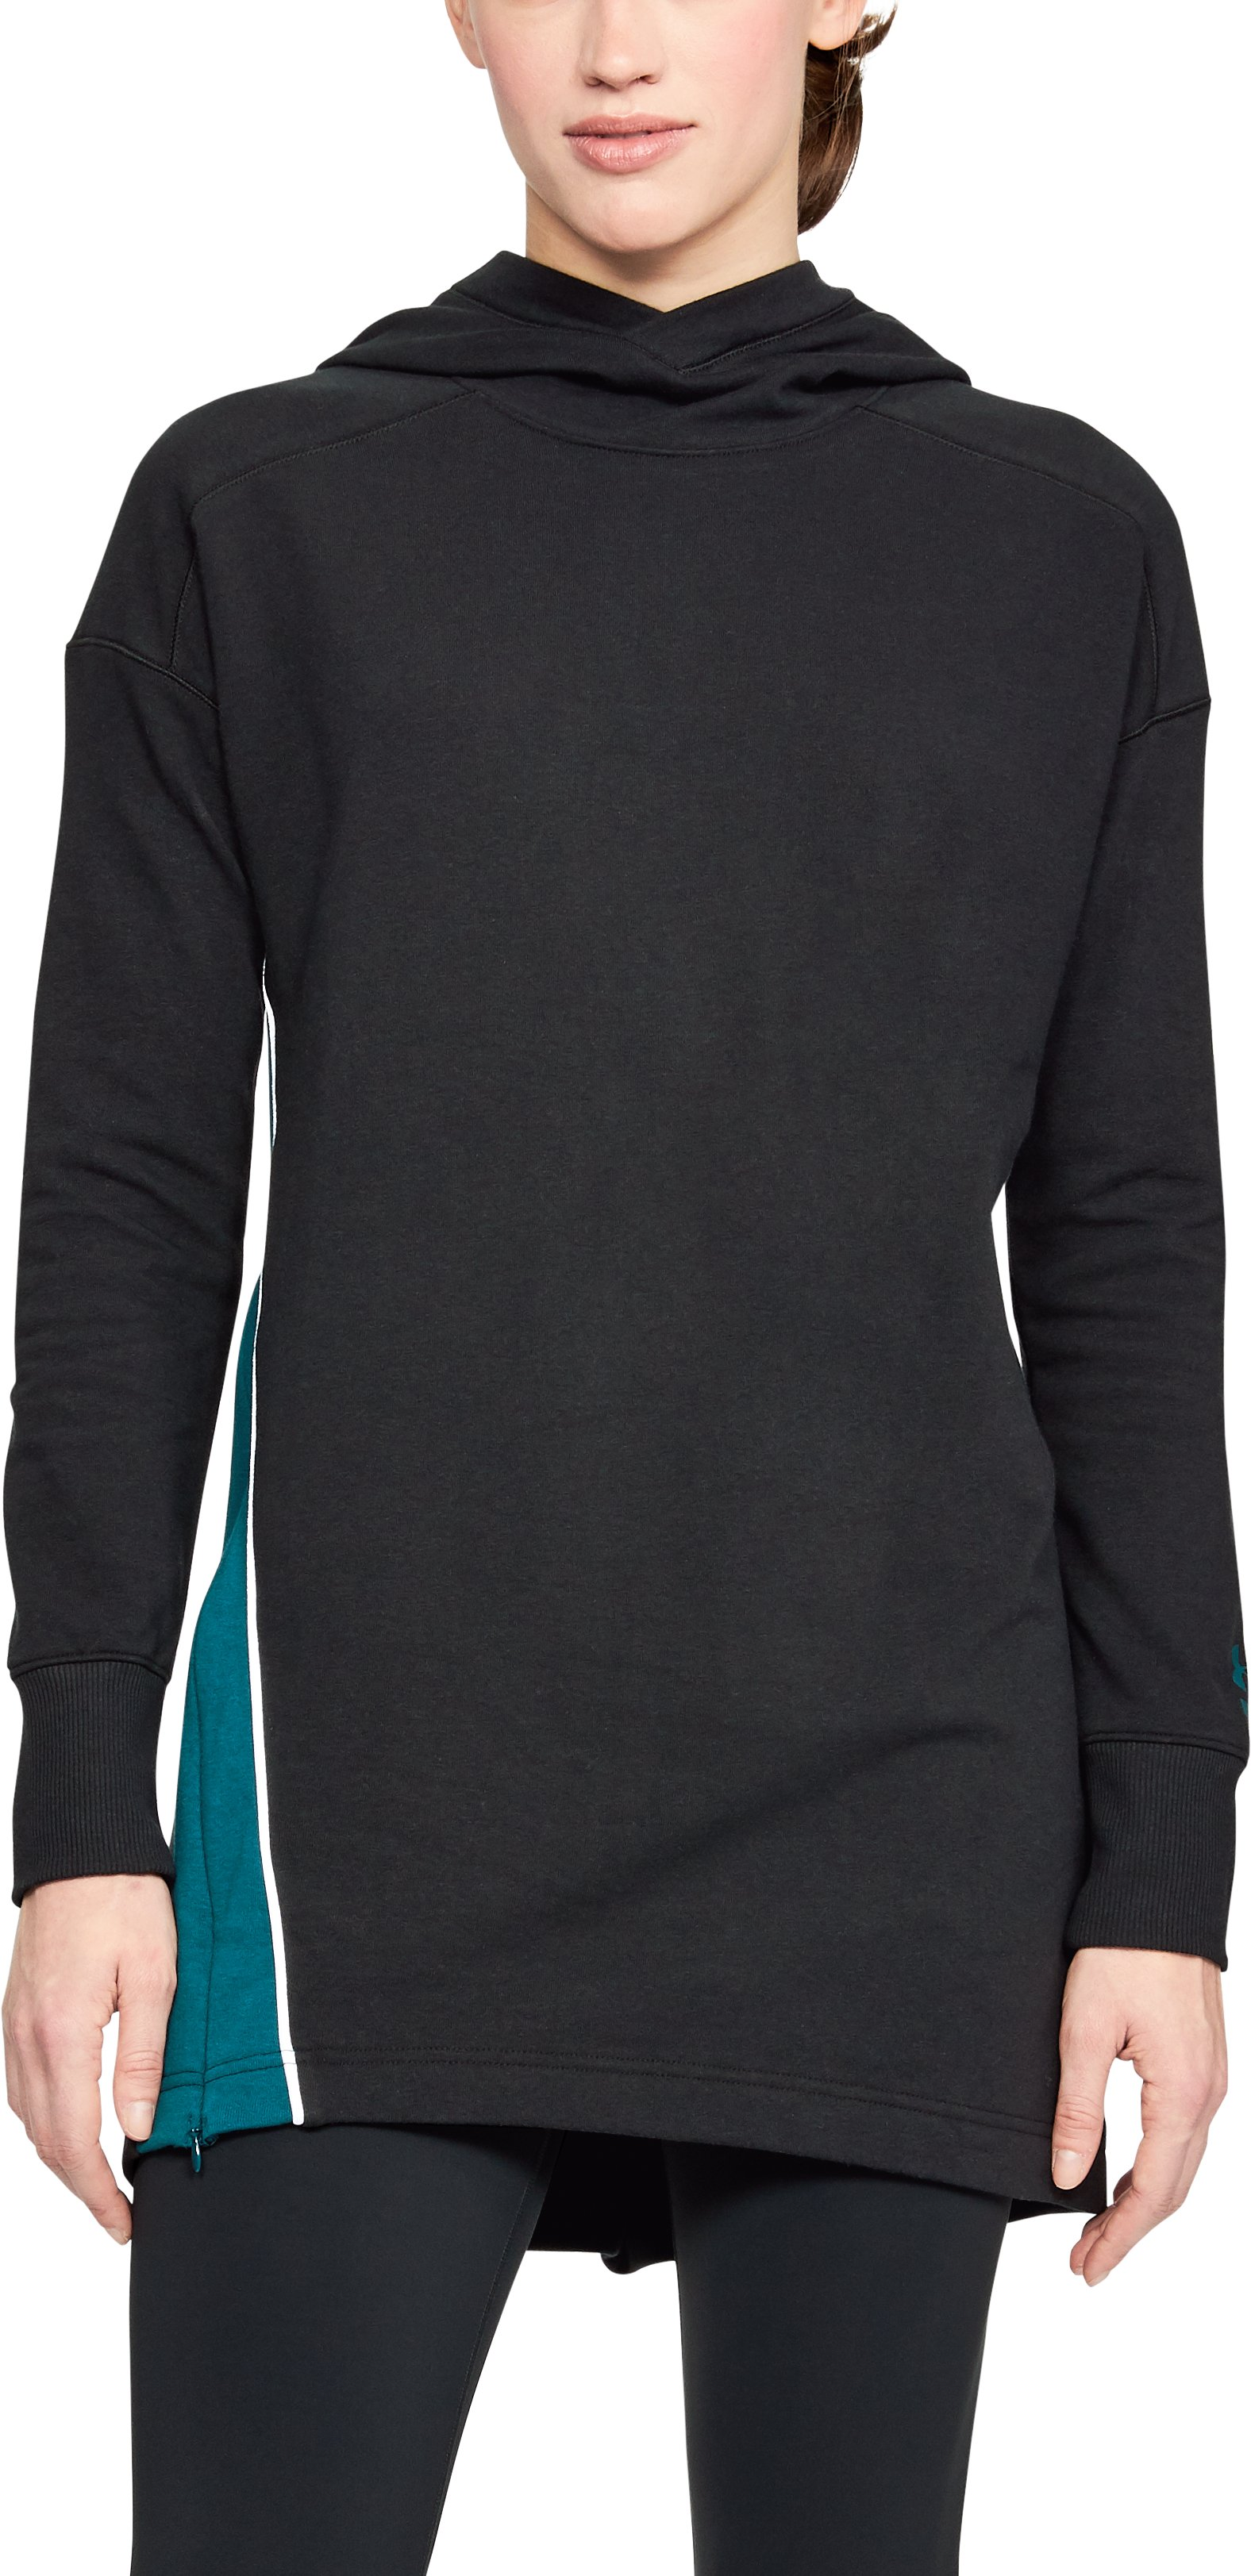 black tunics Women's UA Fleece Tunic <strong>Fits</strong> well and is comfortable.